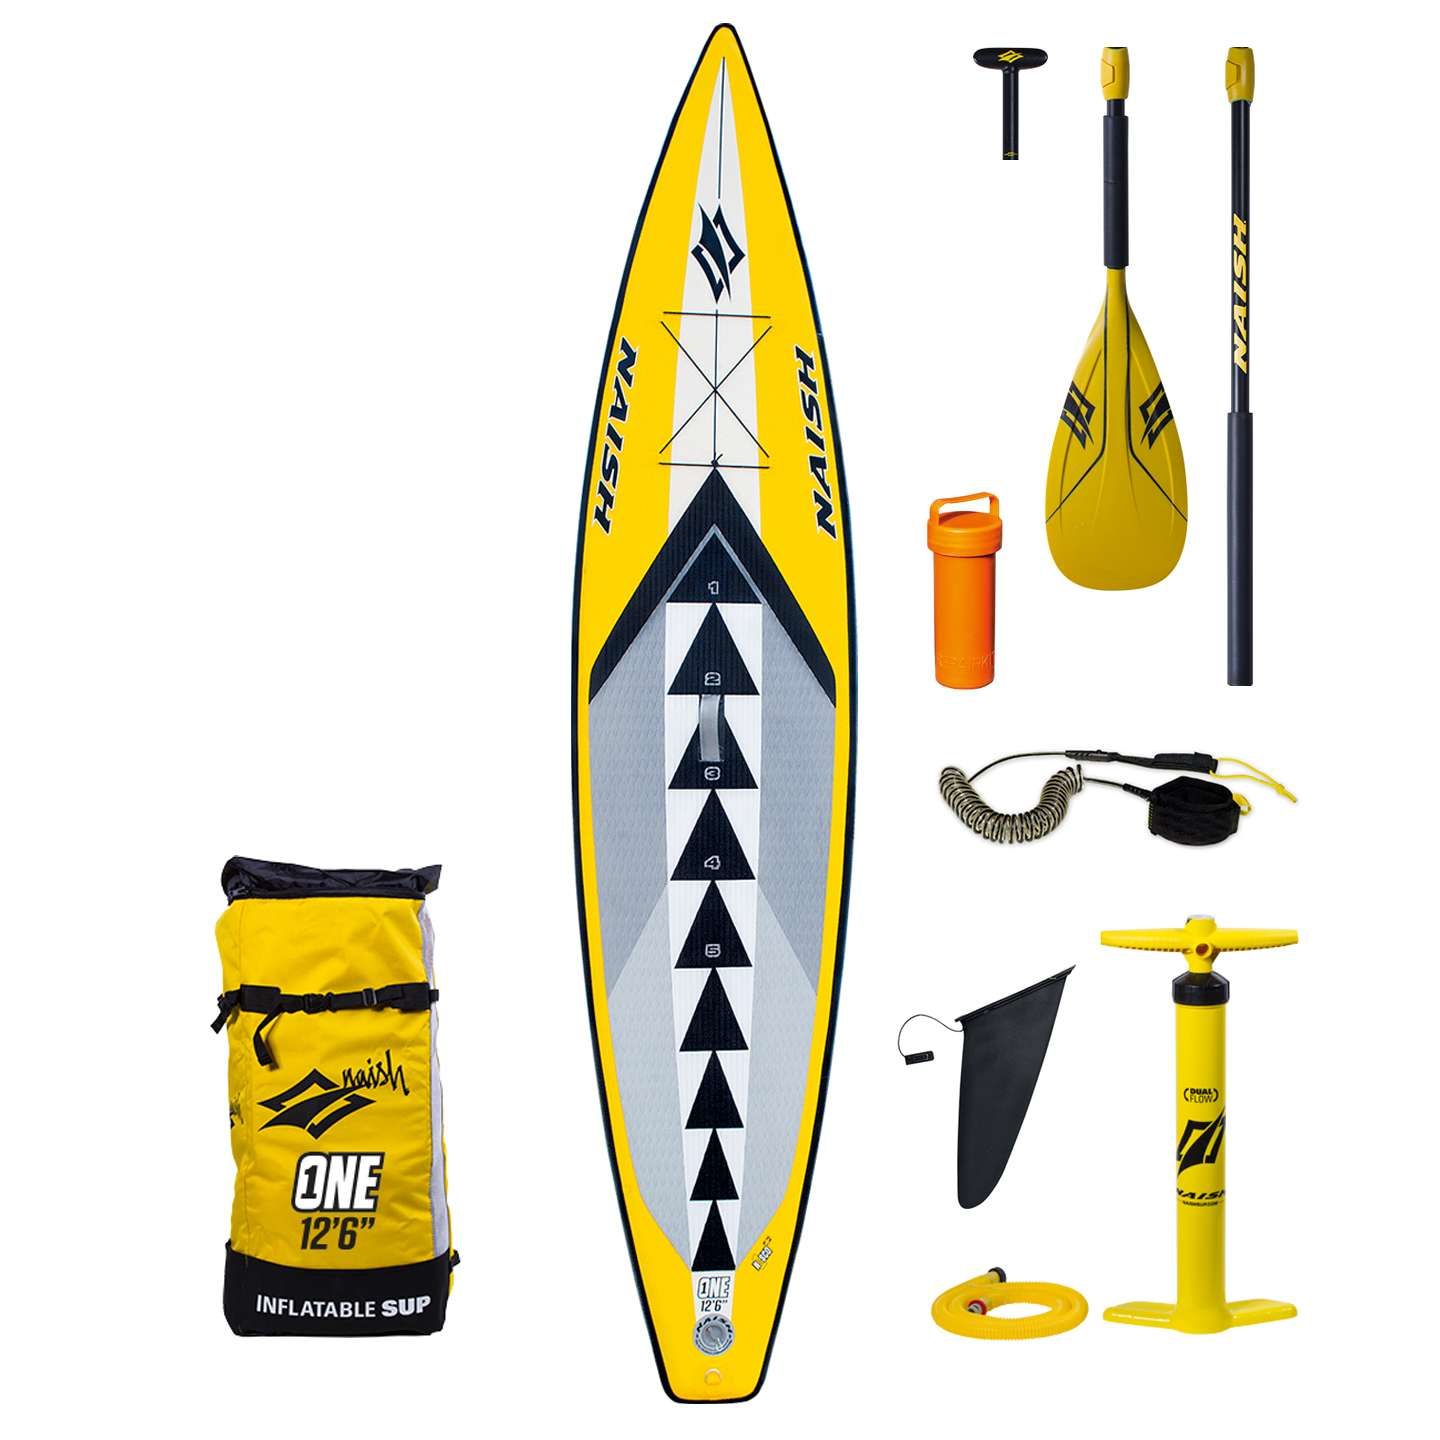 Naish One Air Nisco 12 6 Inflatable Sup Board